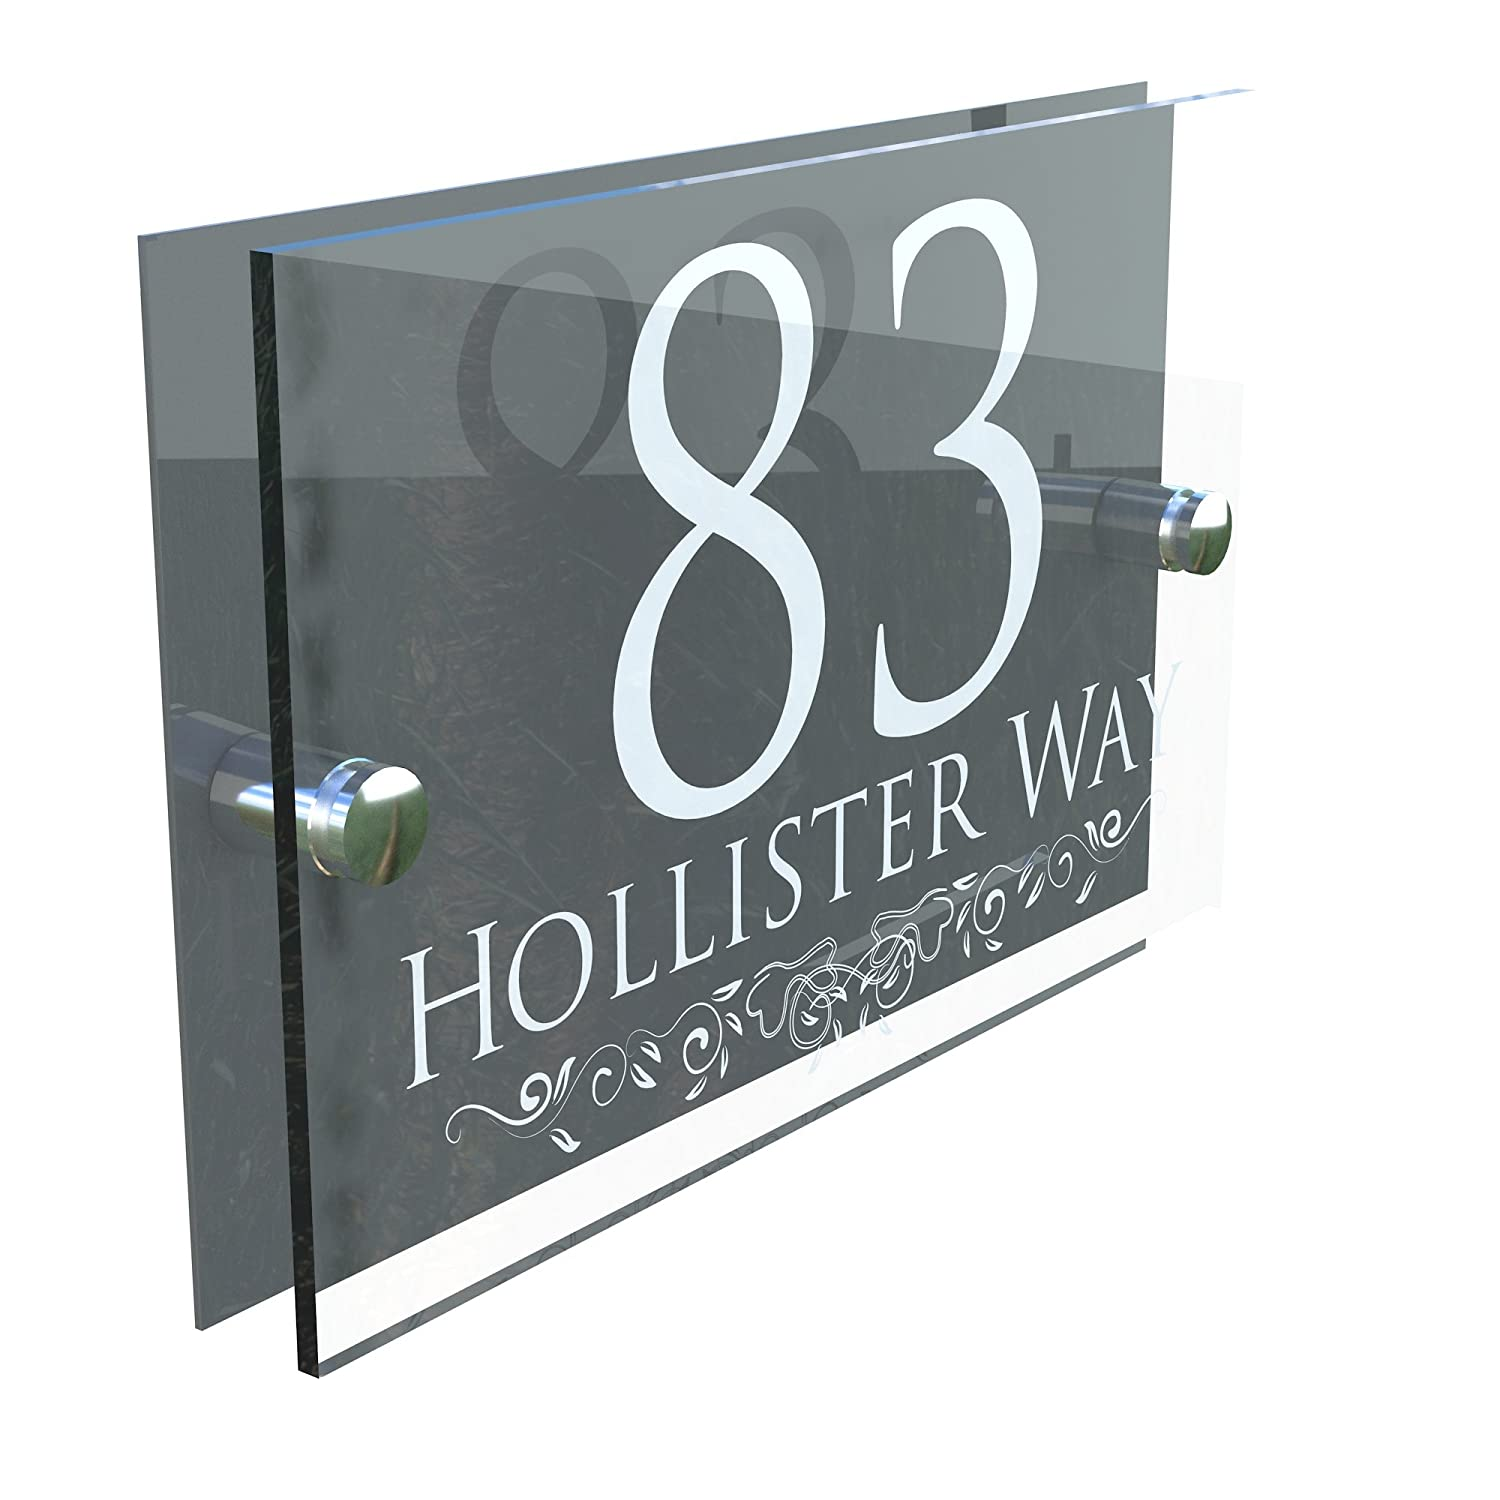 DECORATIVE HOUSE SIGN PLAQUE DOOR NUMBER STREET GLASS EFFECT ACRYLIC ALUMINIUM NAME - Anthracite K Smart Sign Ltd